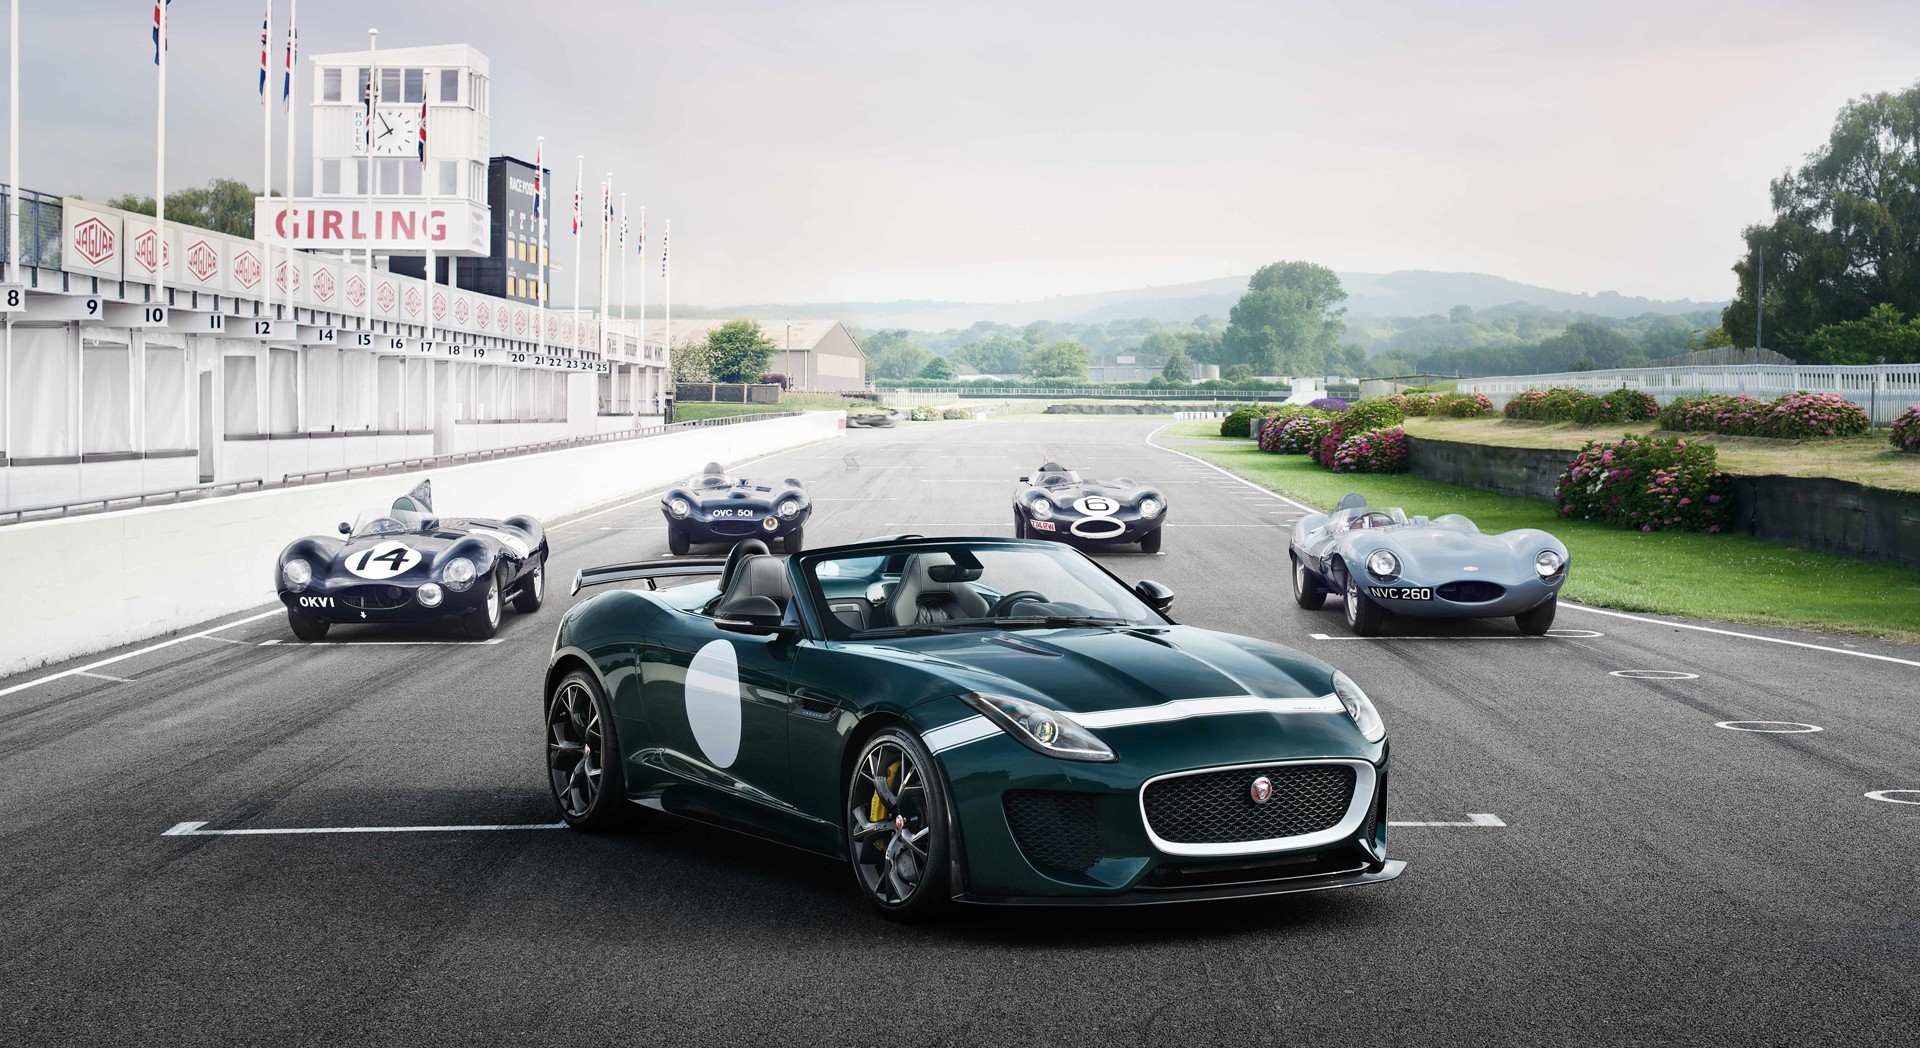 jaguar f type wallpapers archives - page 3 of 4 - hd desktop